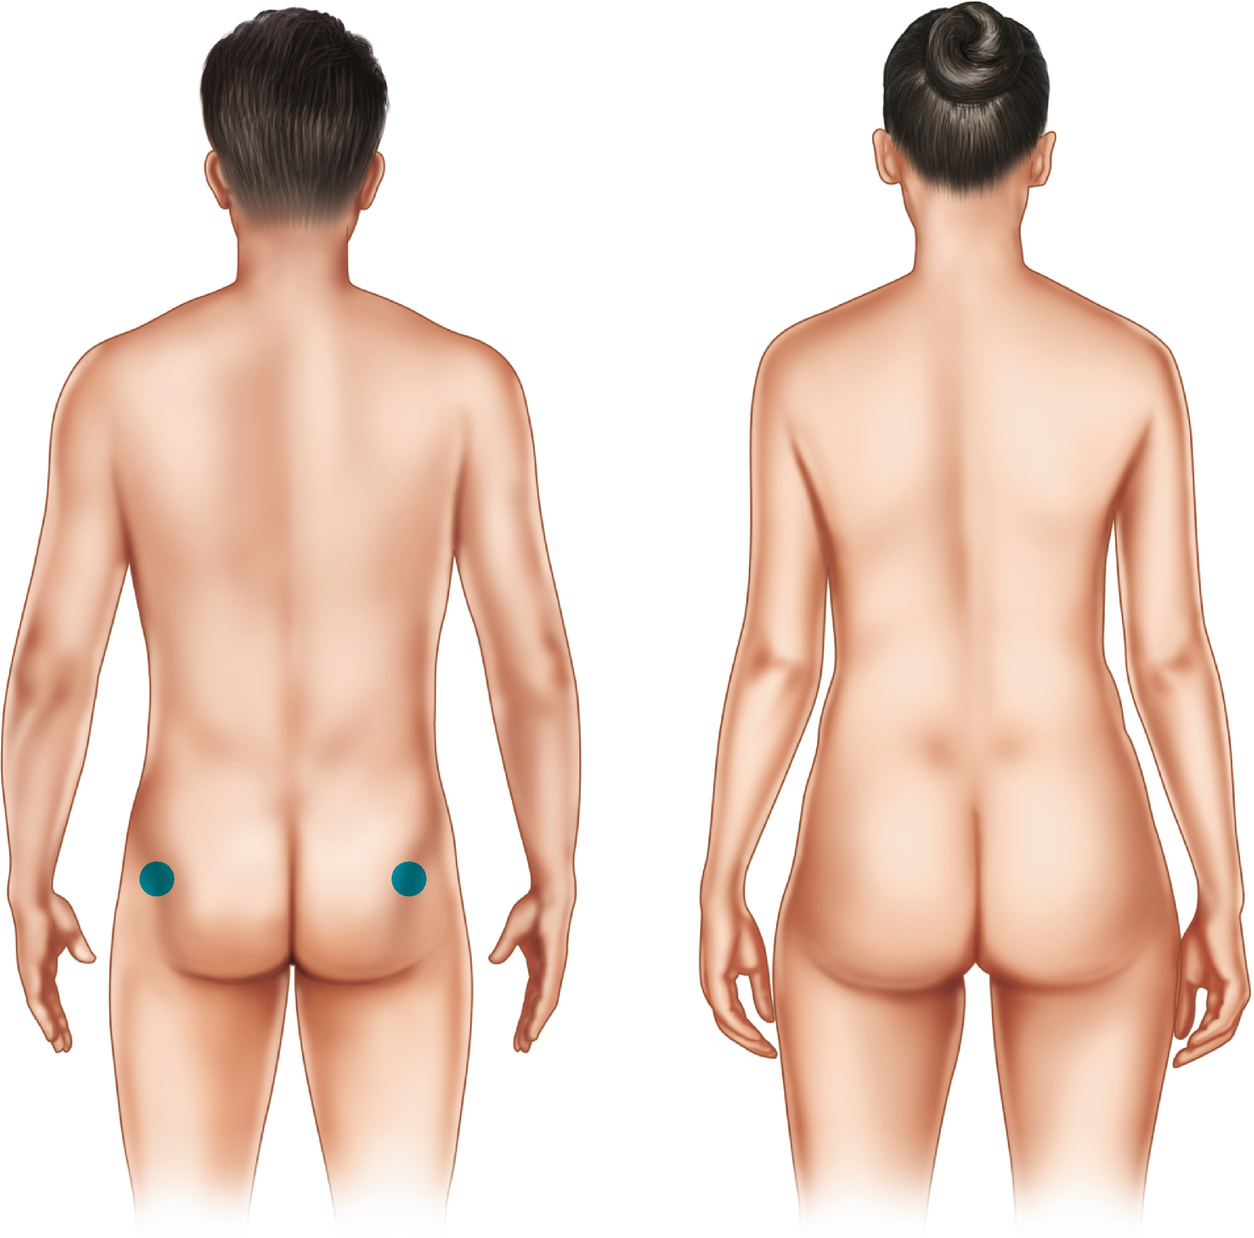 Male-to-Female Breast Augmentation and Body Contouring | SpringerLink